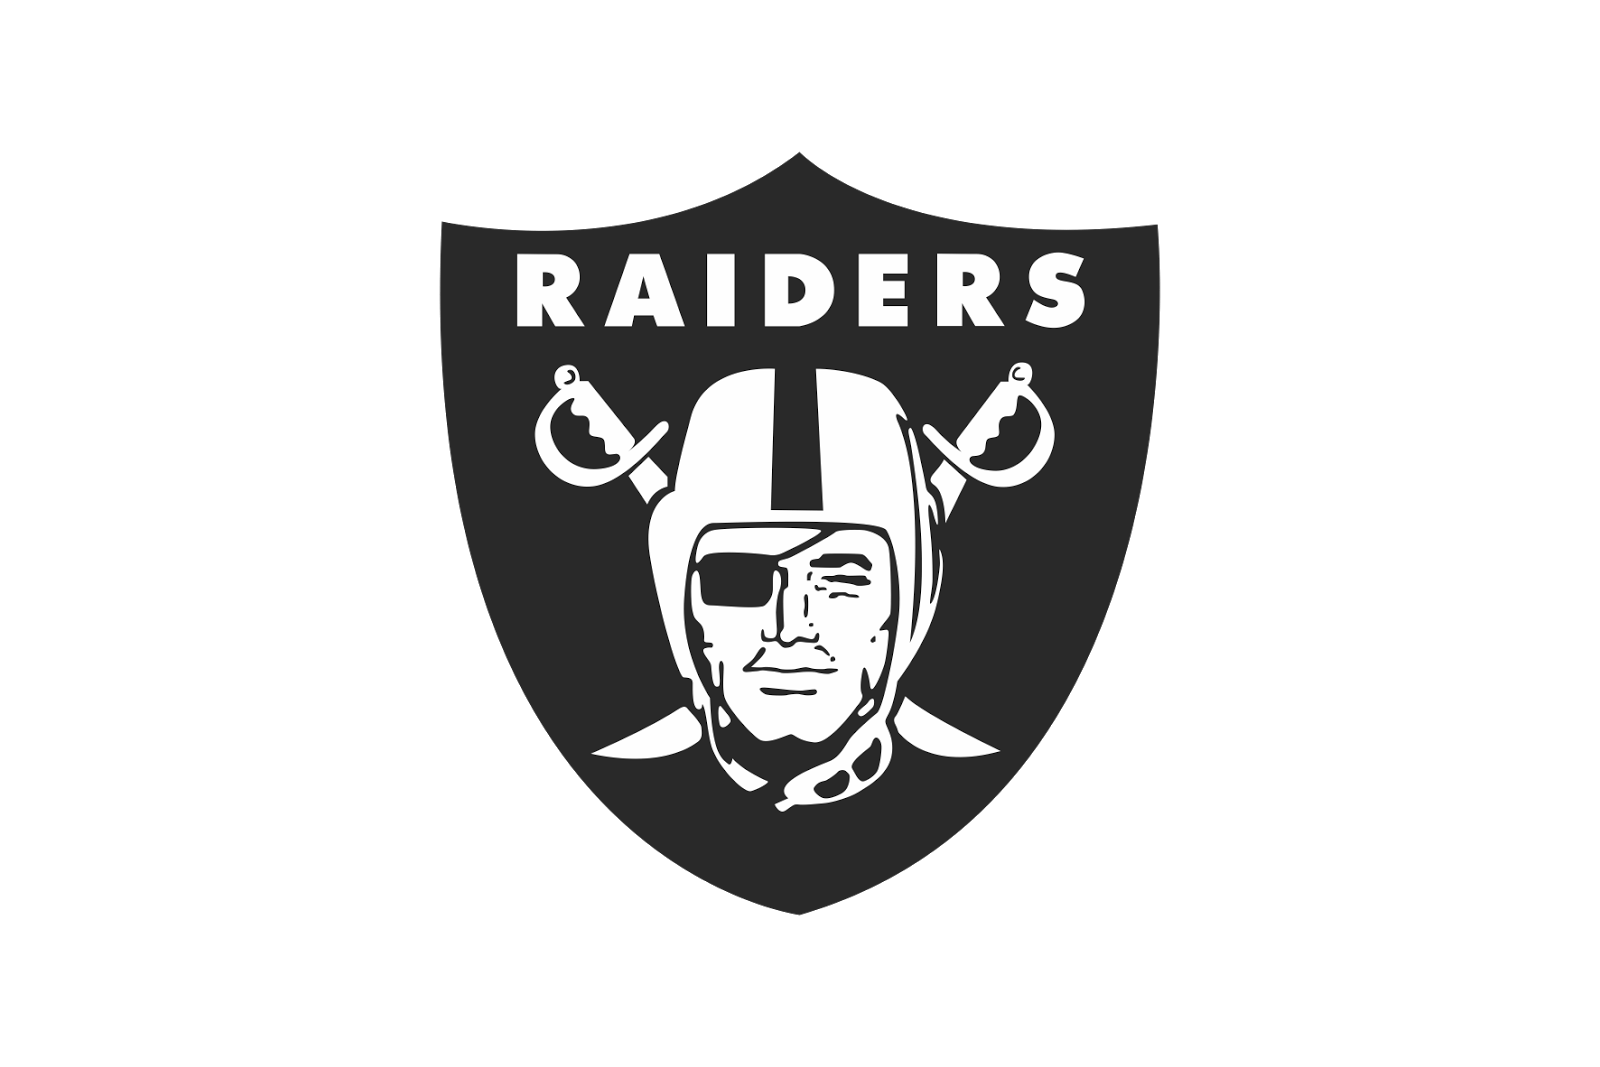 Raiders Logo Png Free Transparent Png Logos